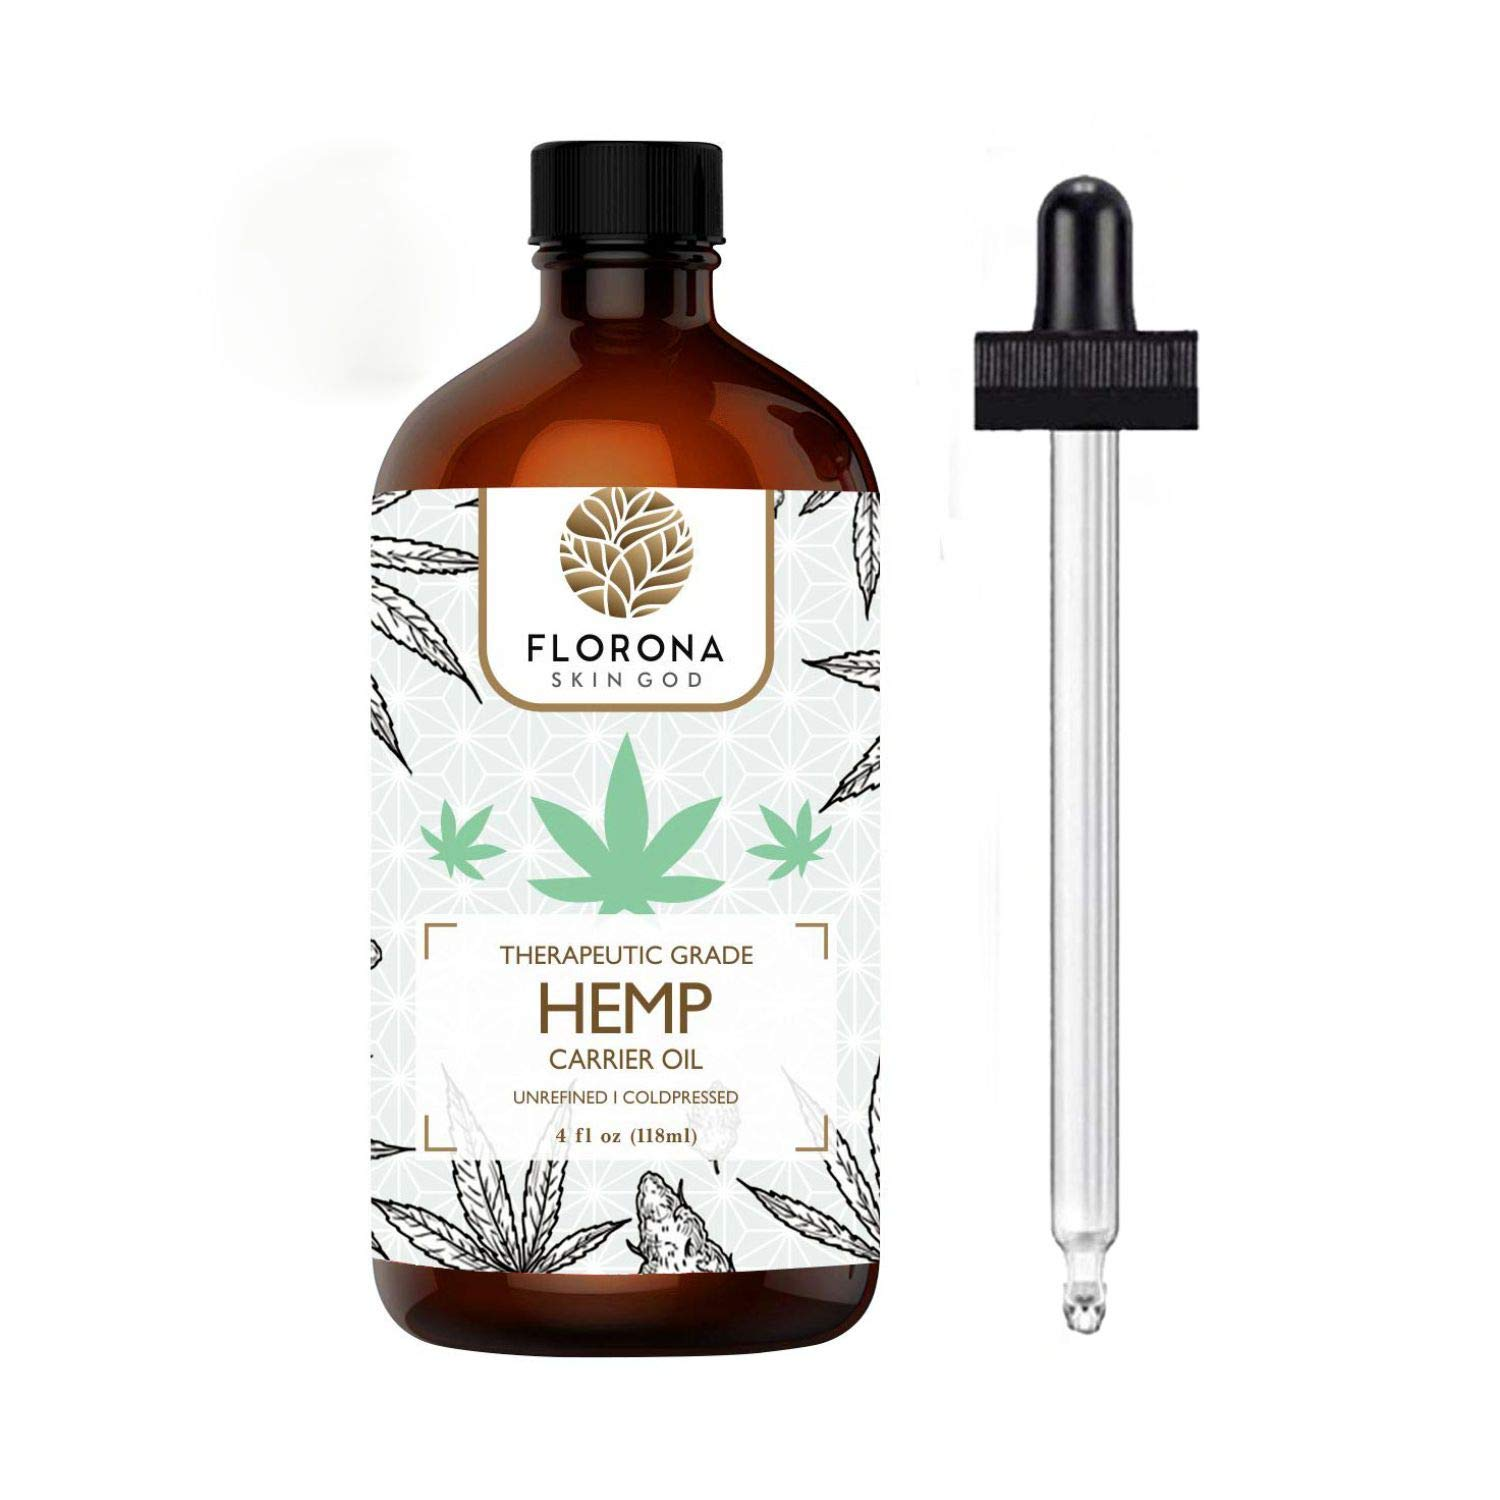 Florona Hemp Seed Oil - 4oz USDA Certified - Sativa Oil - Pure, Cold Pressed, Virgin, Unrefined, Vegan, Non-GMO, Food Grade, No Preservatives - High Omega 3 6 9 Fatty Acids, for Joints, Skin, Hair